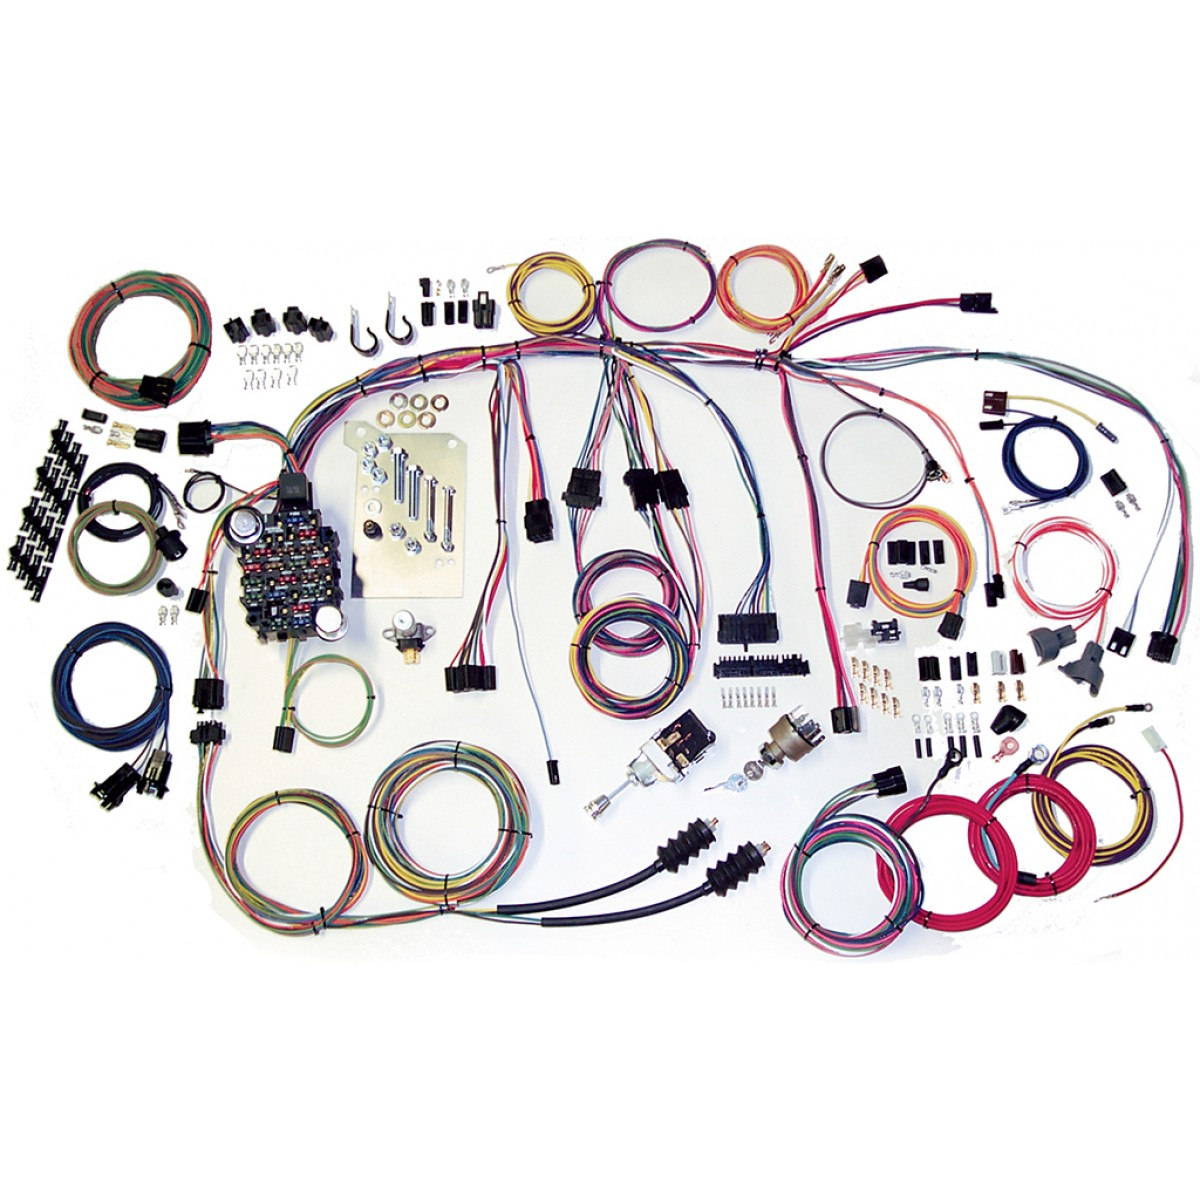 60 66 chevy truck wiring harness kit 1960 1966 chevy truck part 500560 chevy c10 c20 wiring harness chevy c10 wiring harness complete wiring harness kit 1960 1966 1965 chevy c10 wiring harness at eliteediting.co